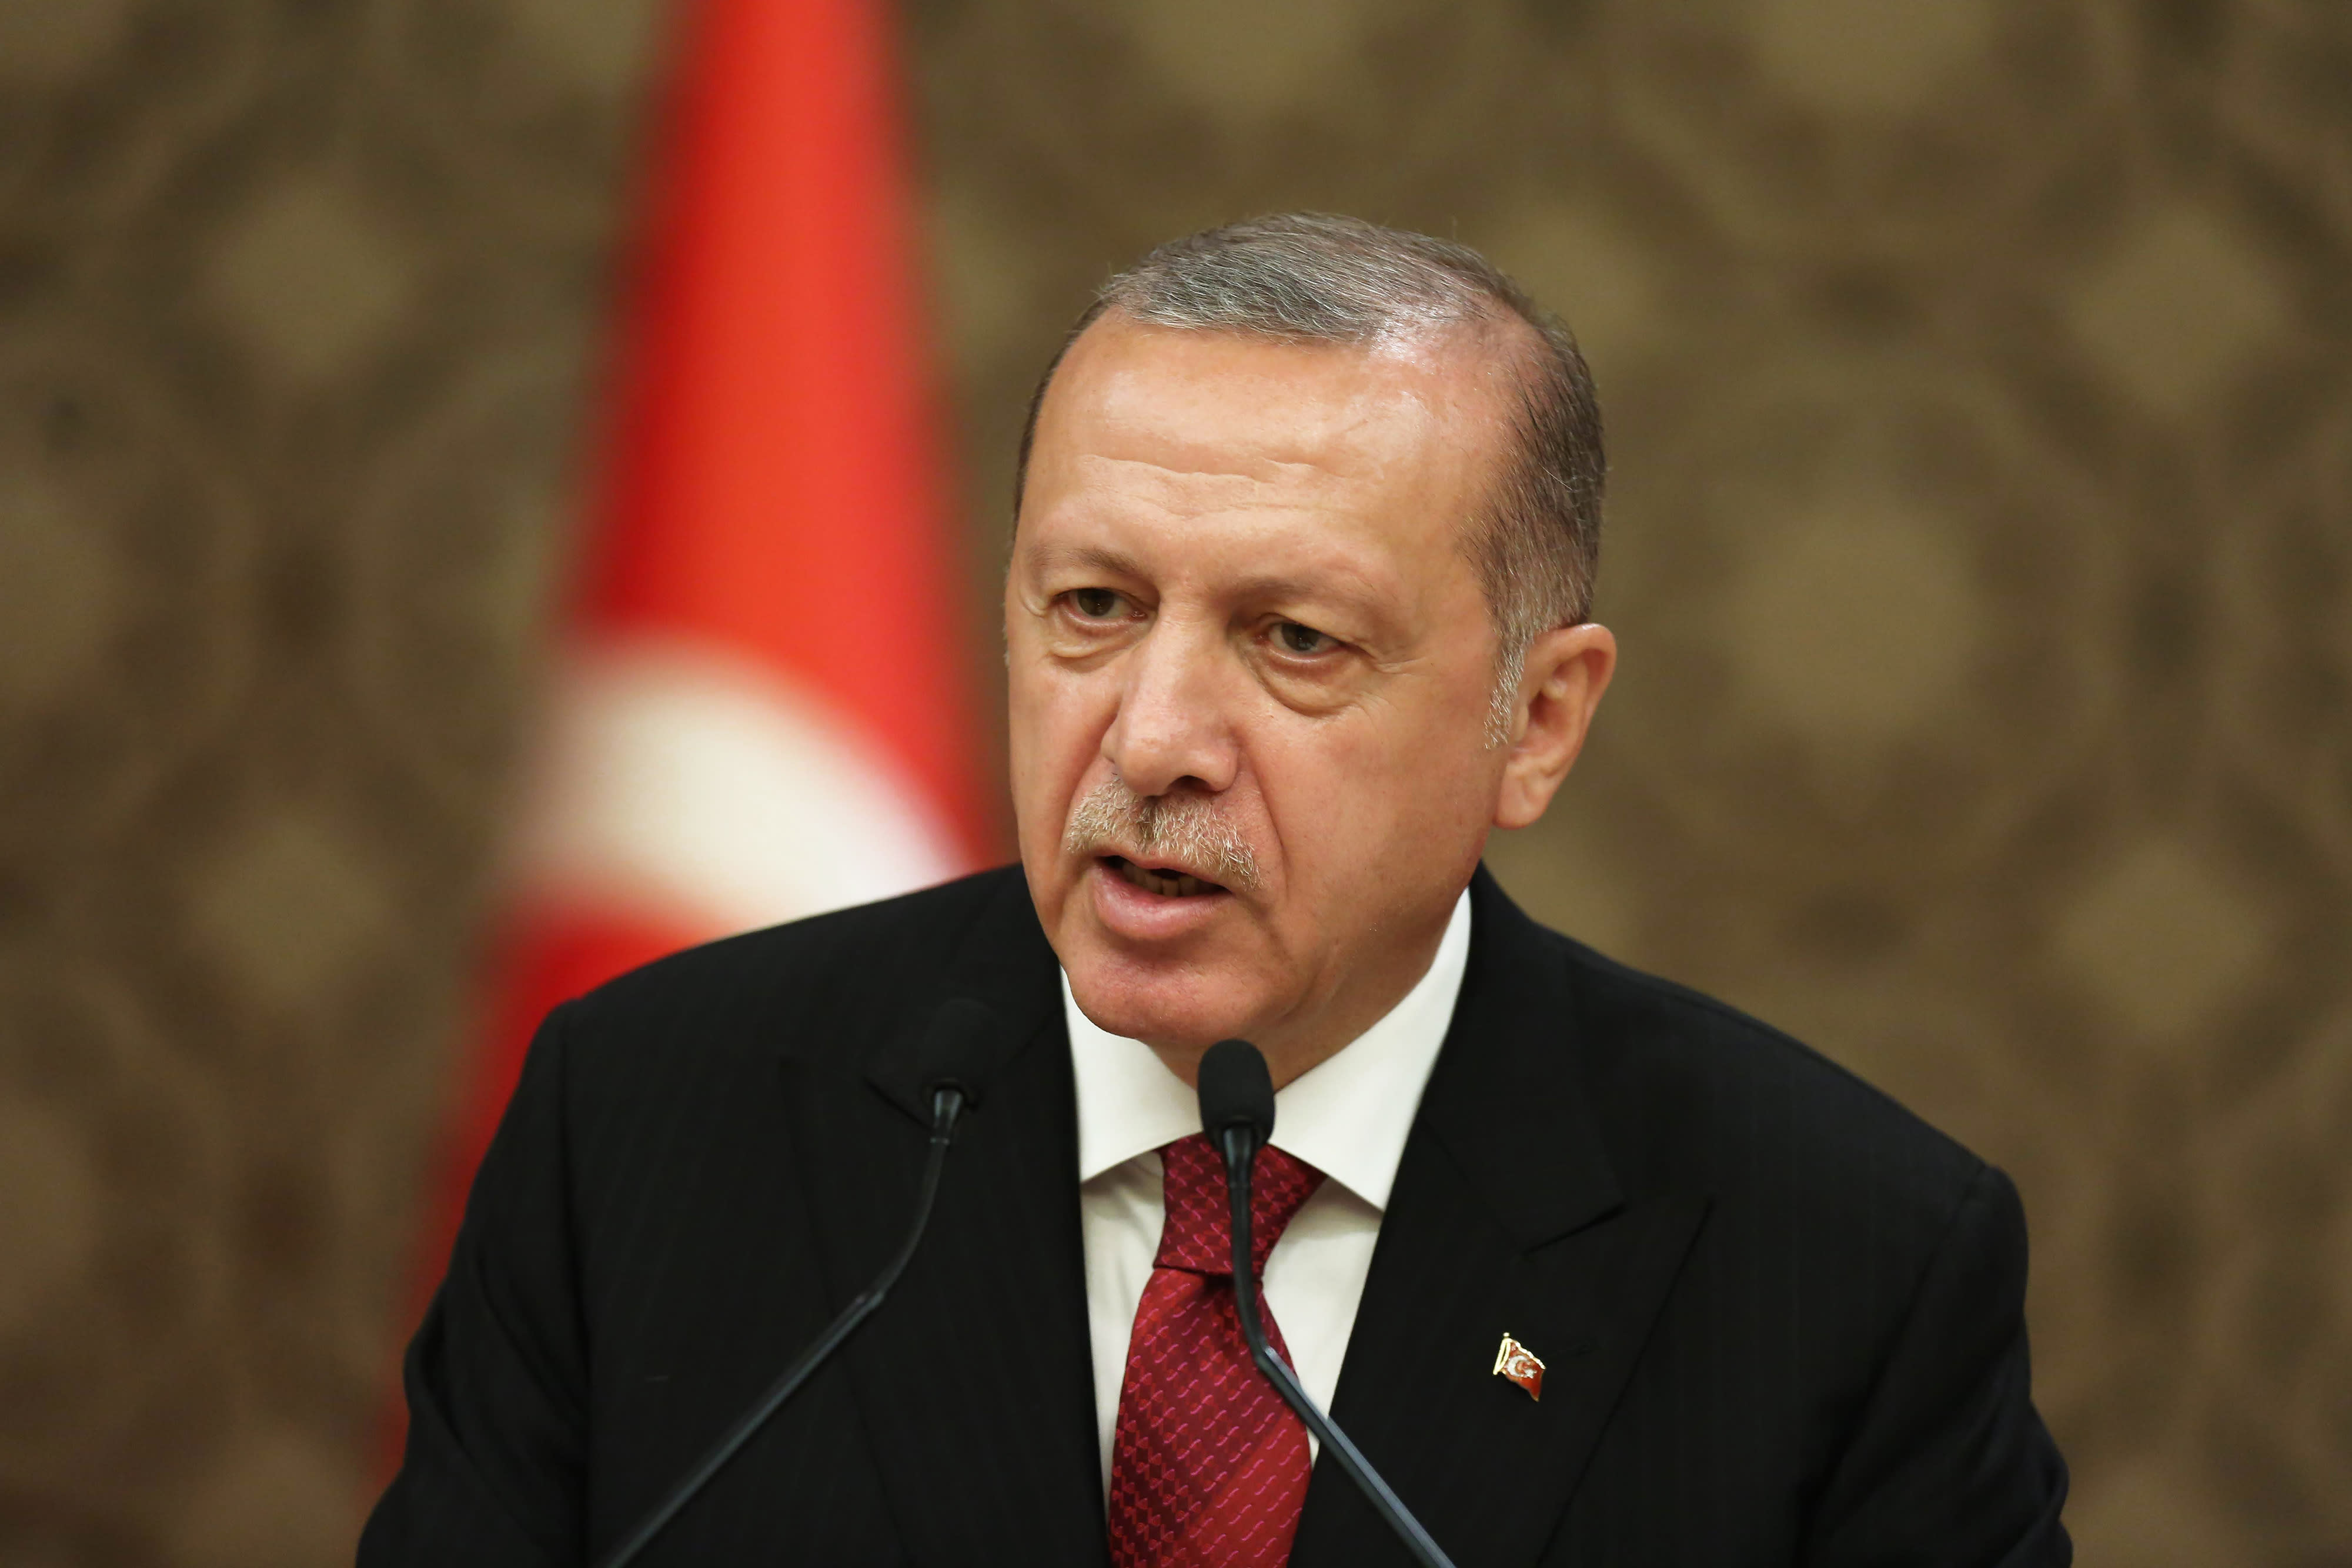 Erdogan reportedly said Turkey may face 'serious problems' if the central bank is not overhauled